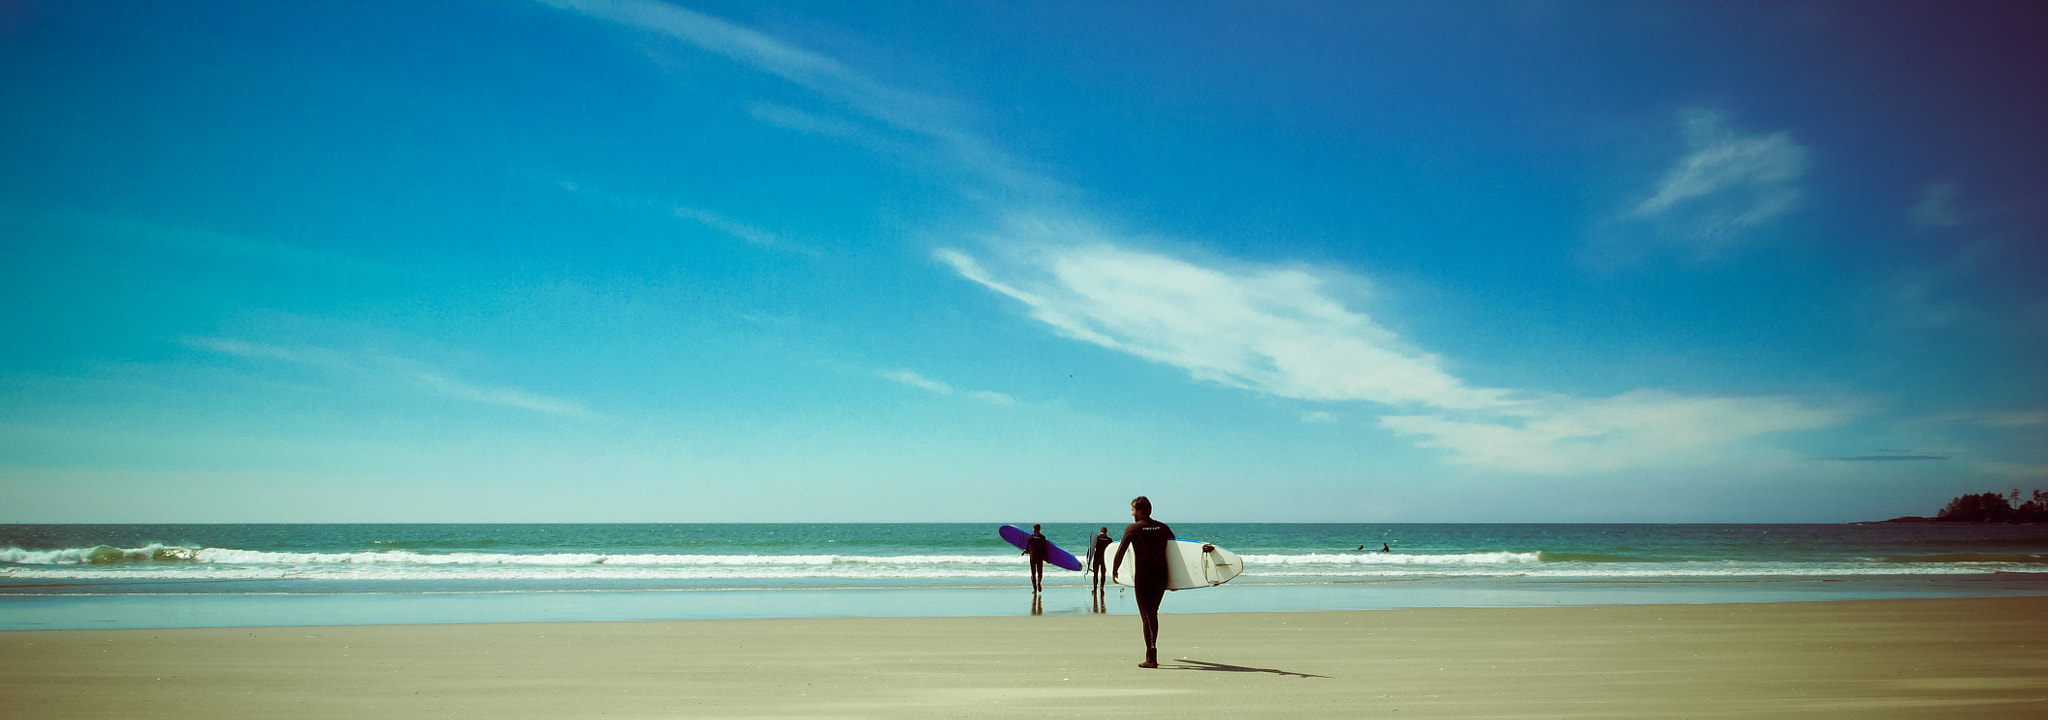 Photograph tofino beach surf by syl pe on 500px